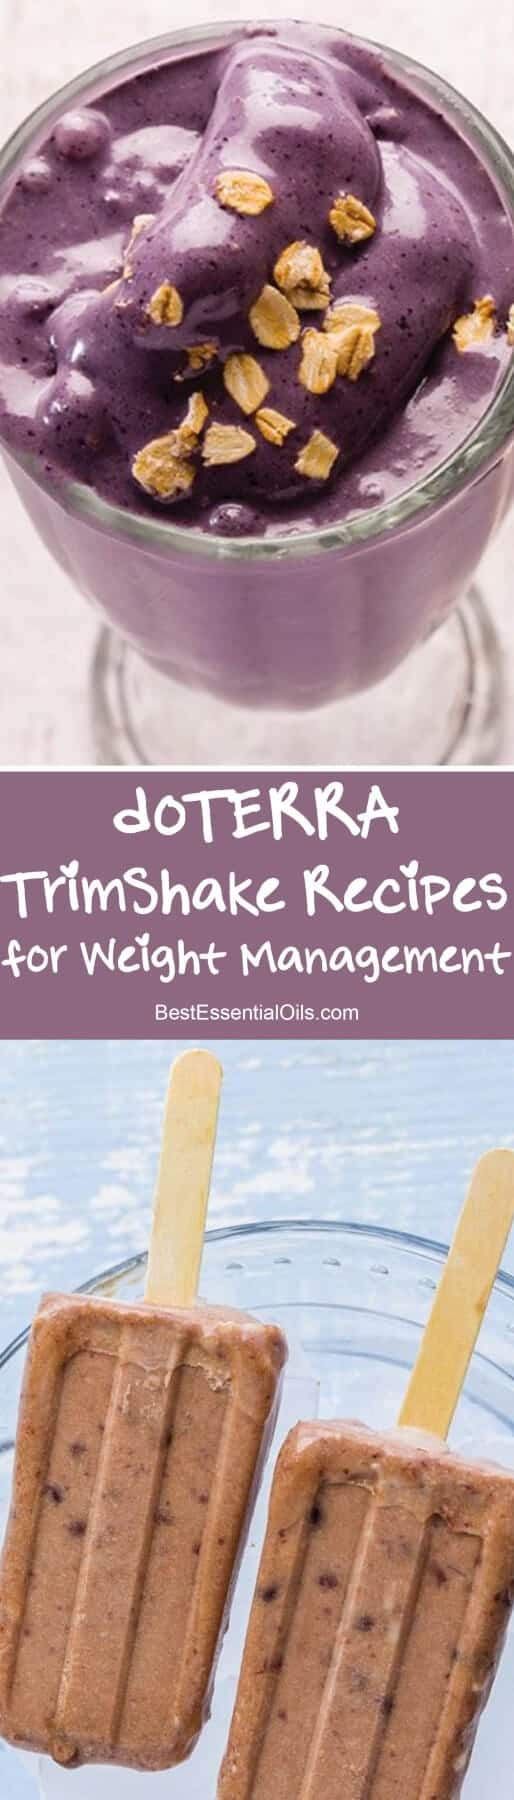 doTERRA Trim Shake Recipe Ideas for Weight Management